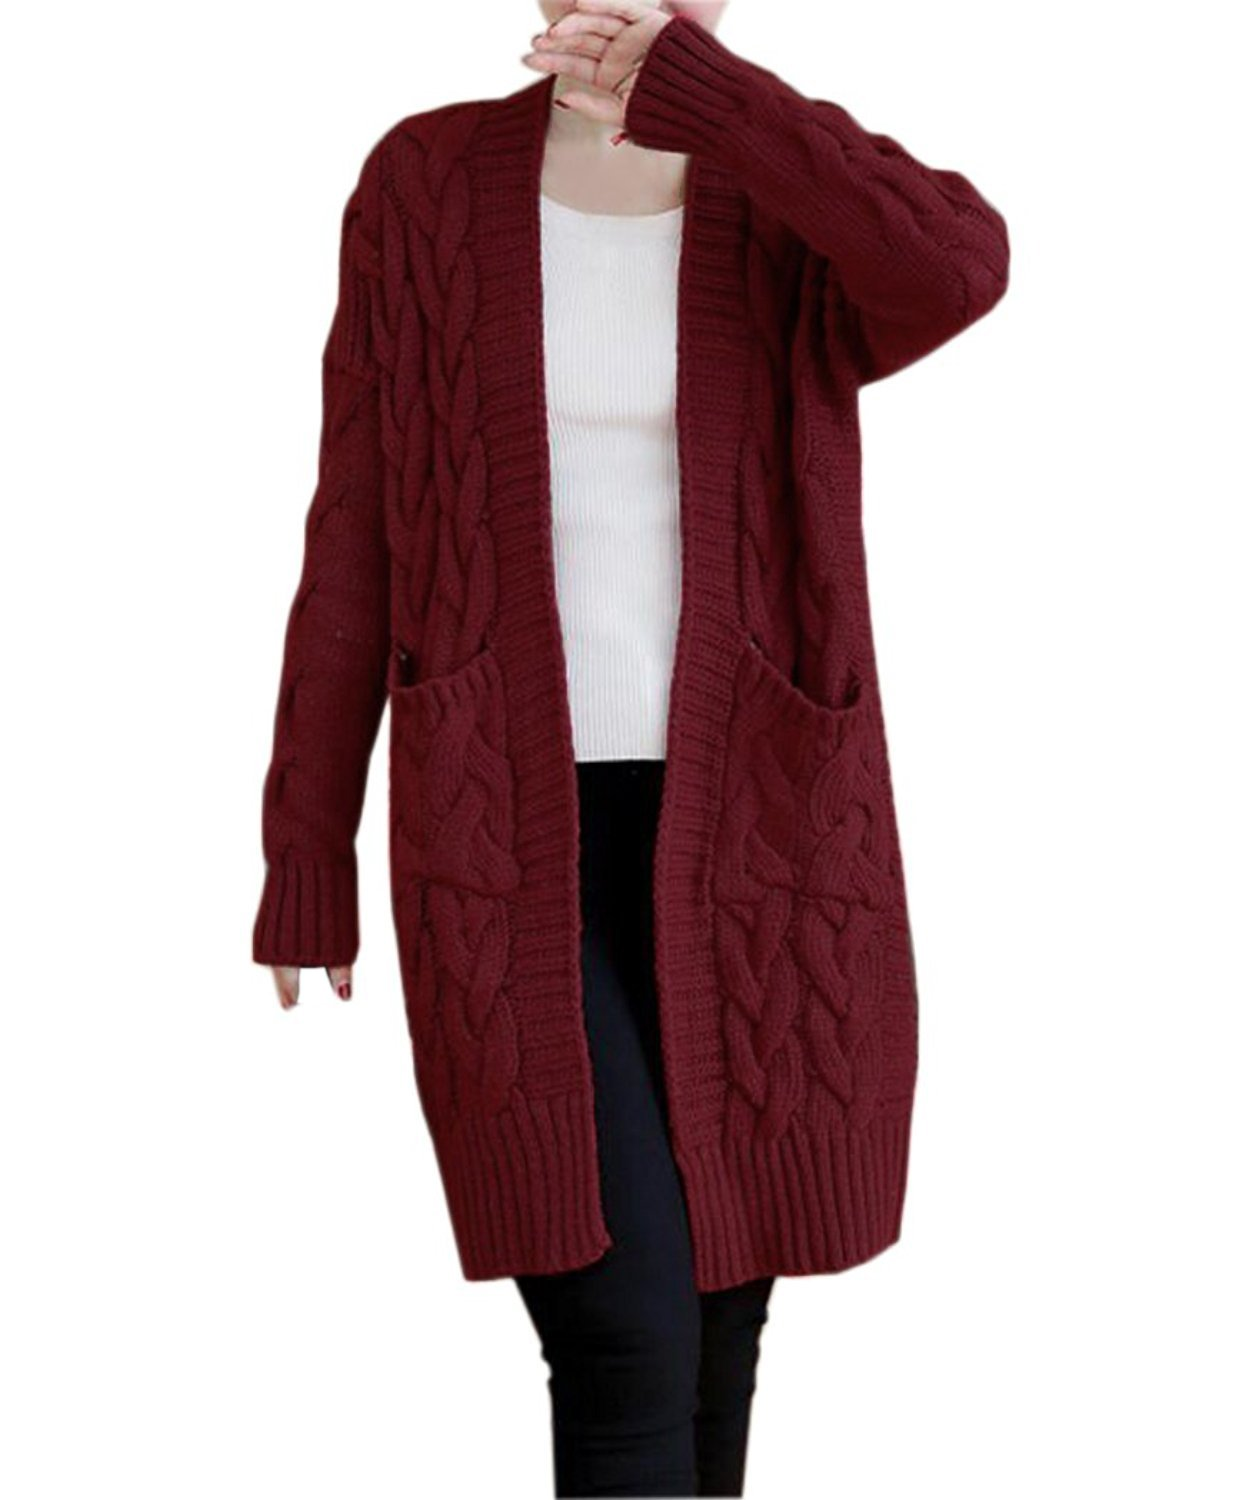 NUTEXROL Women's Open Front Long Sleeve Knit Think Cardigan Chunky Sweater Wine L